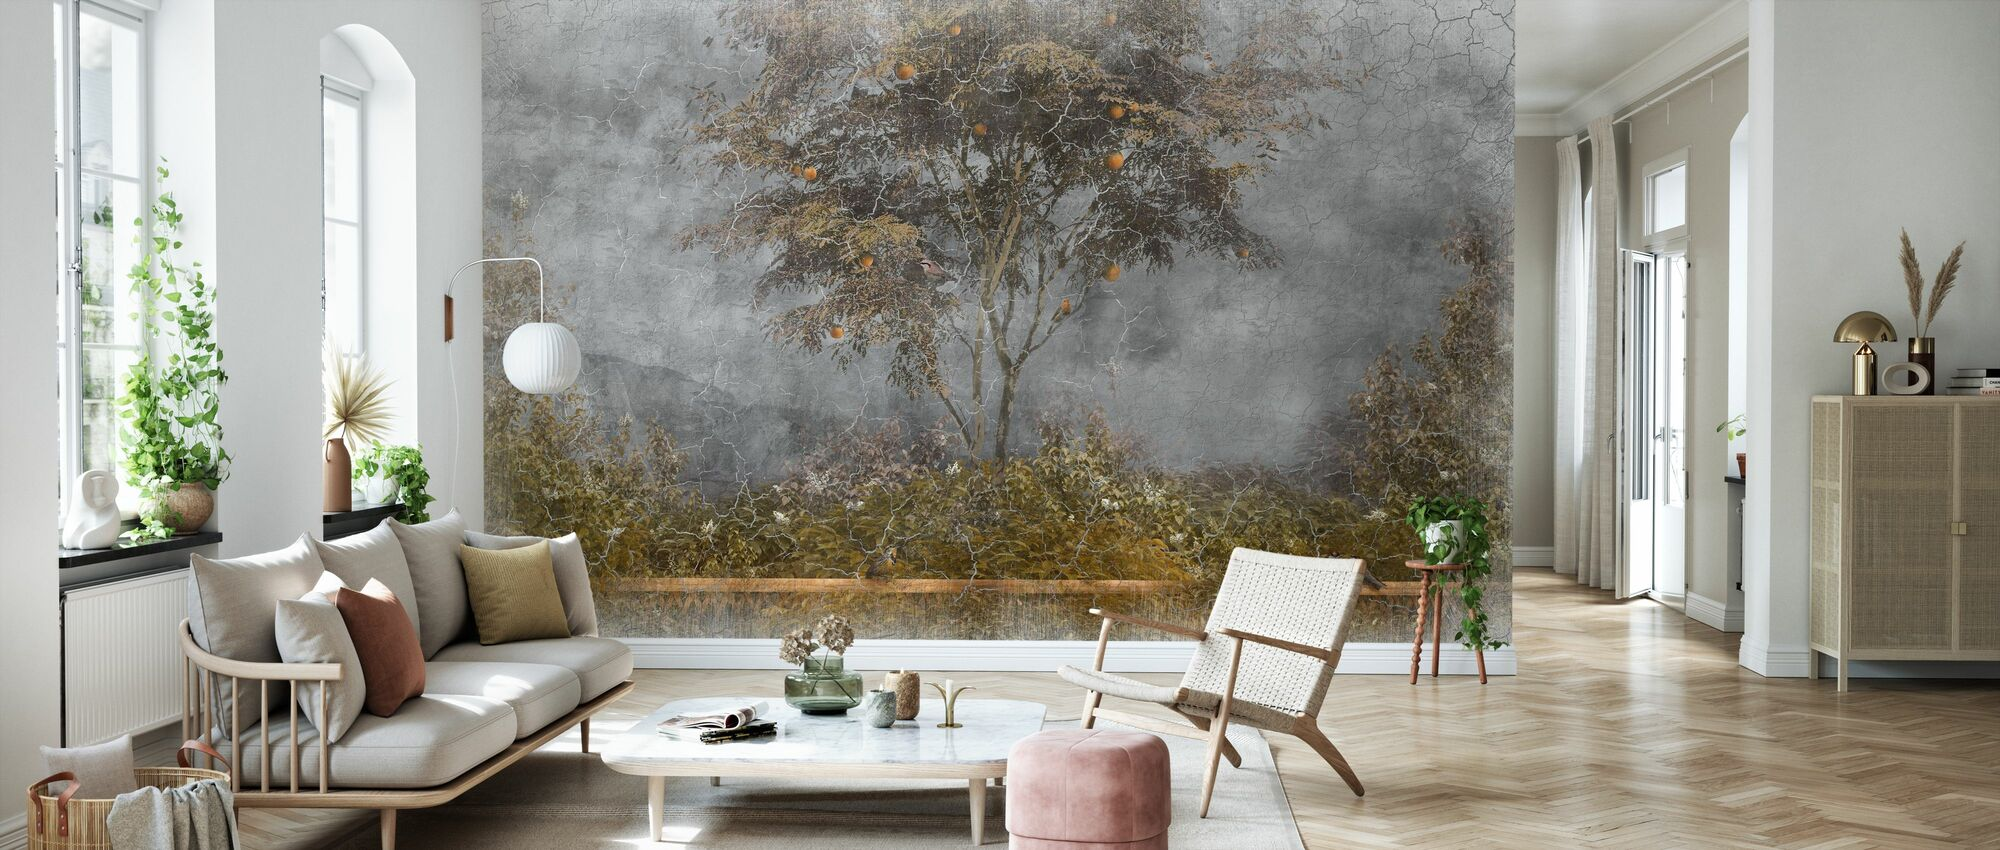 Old Frayed Painted Wall III - Wallpaper - Living Room